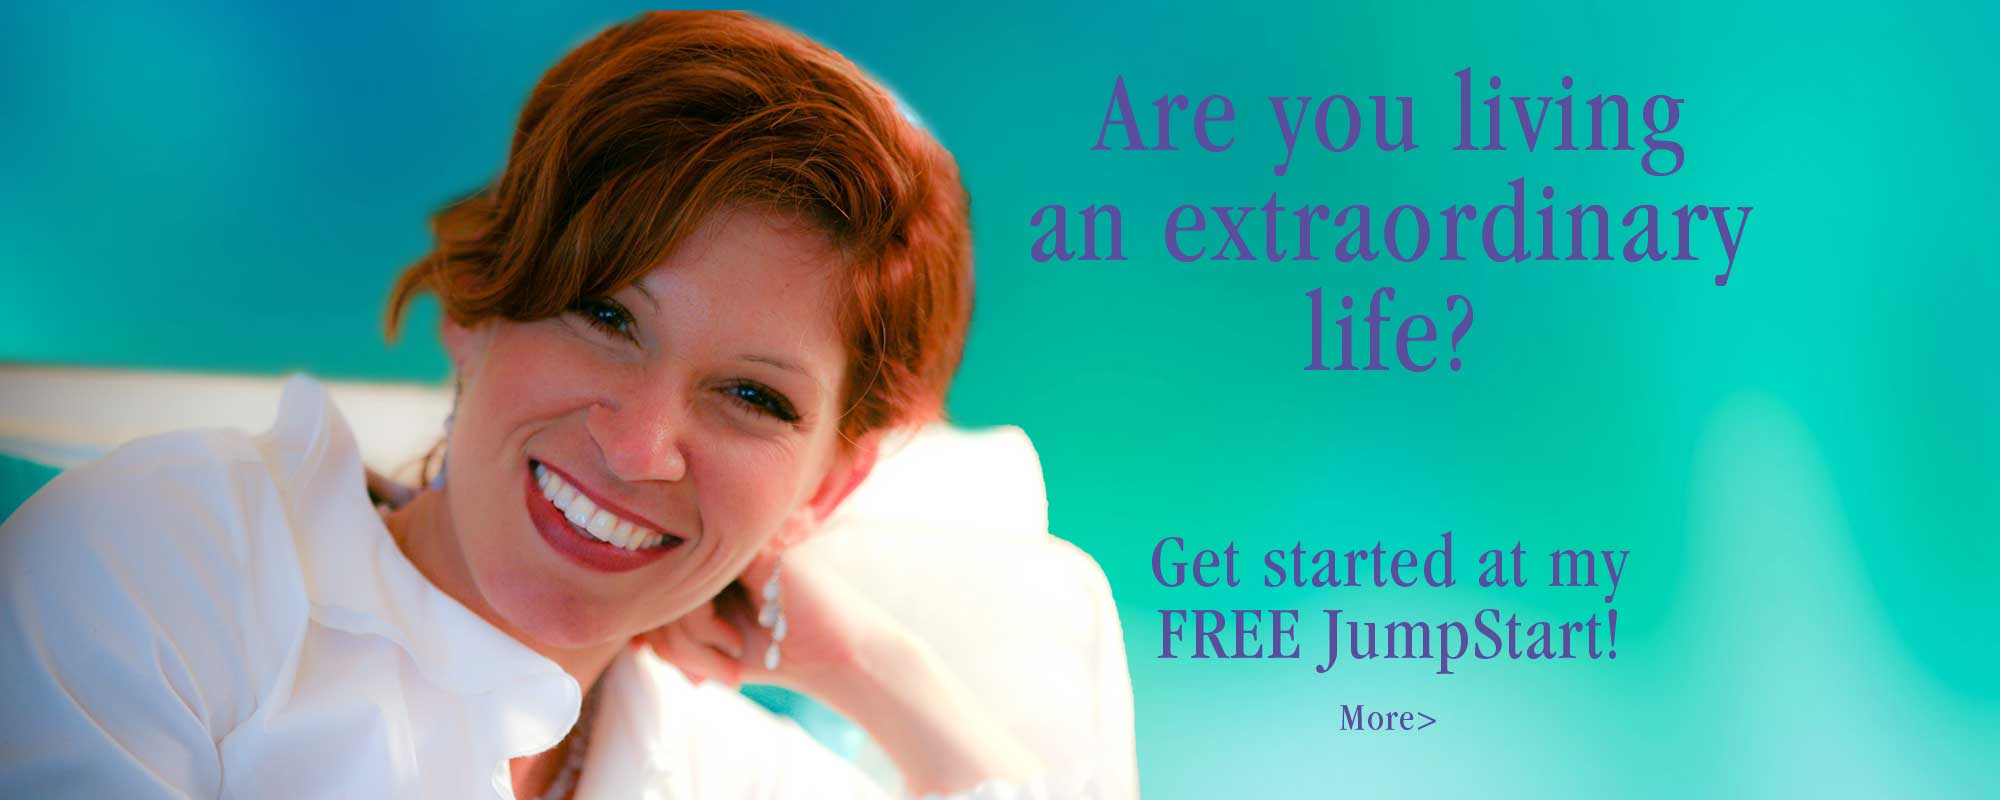 Get Started at my FREE JumpStart!